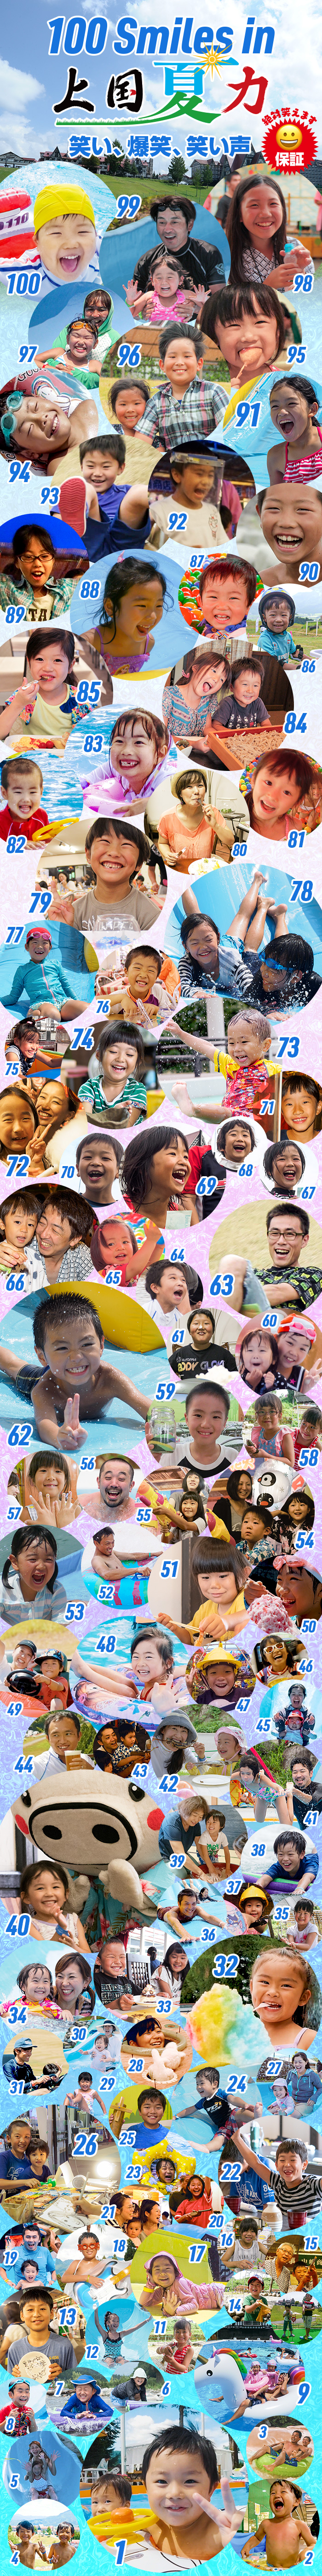 100smiles in 上国夏力!